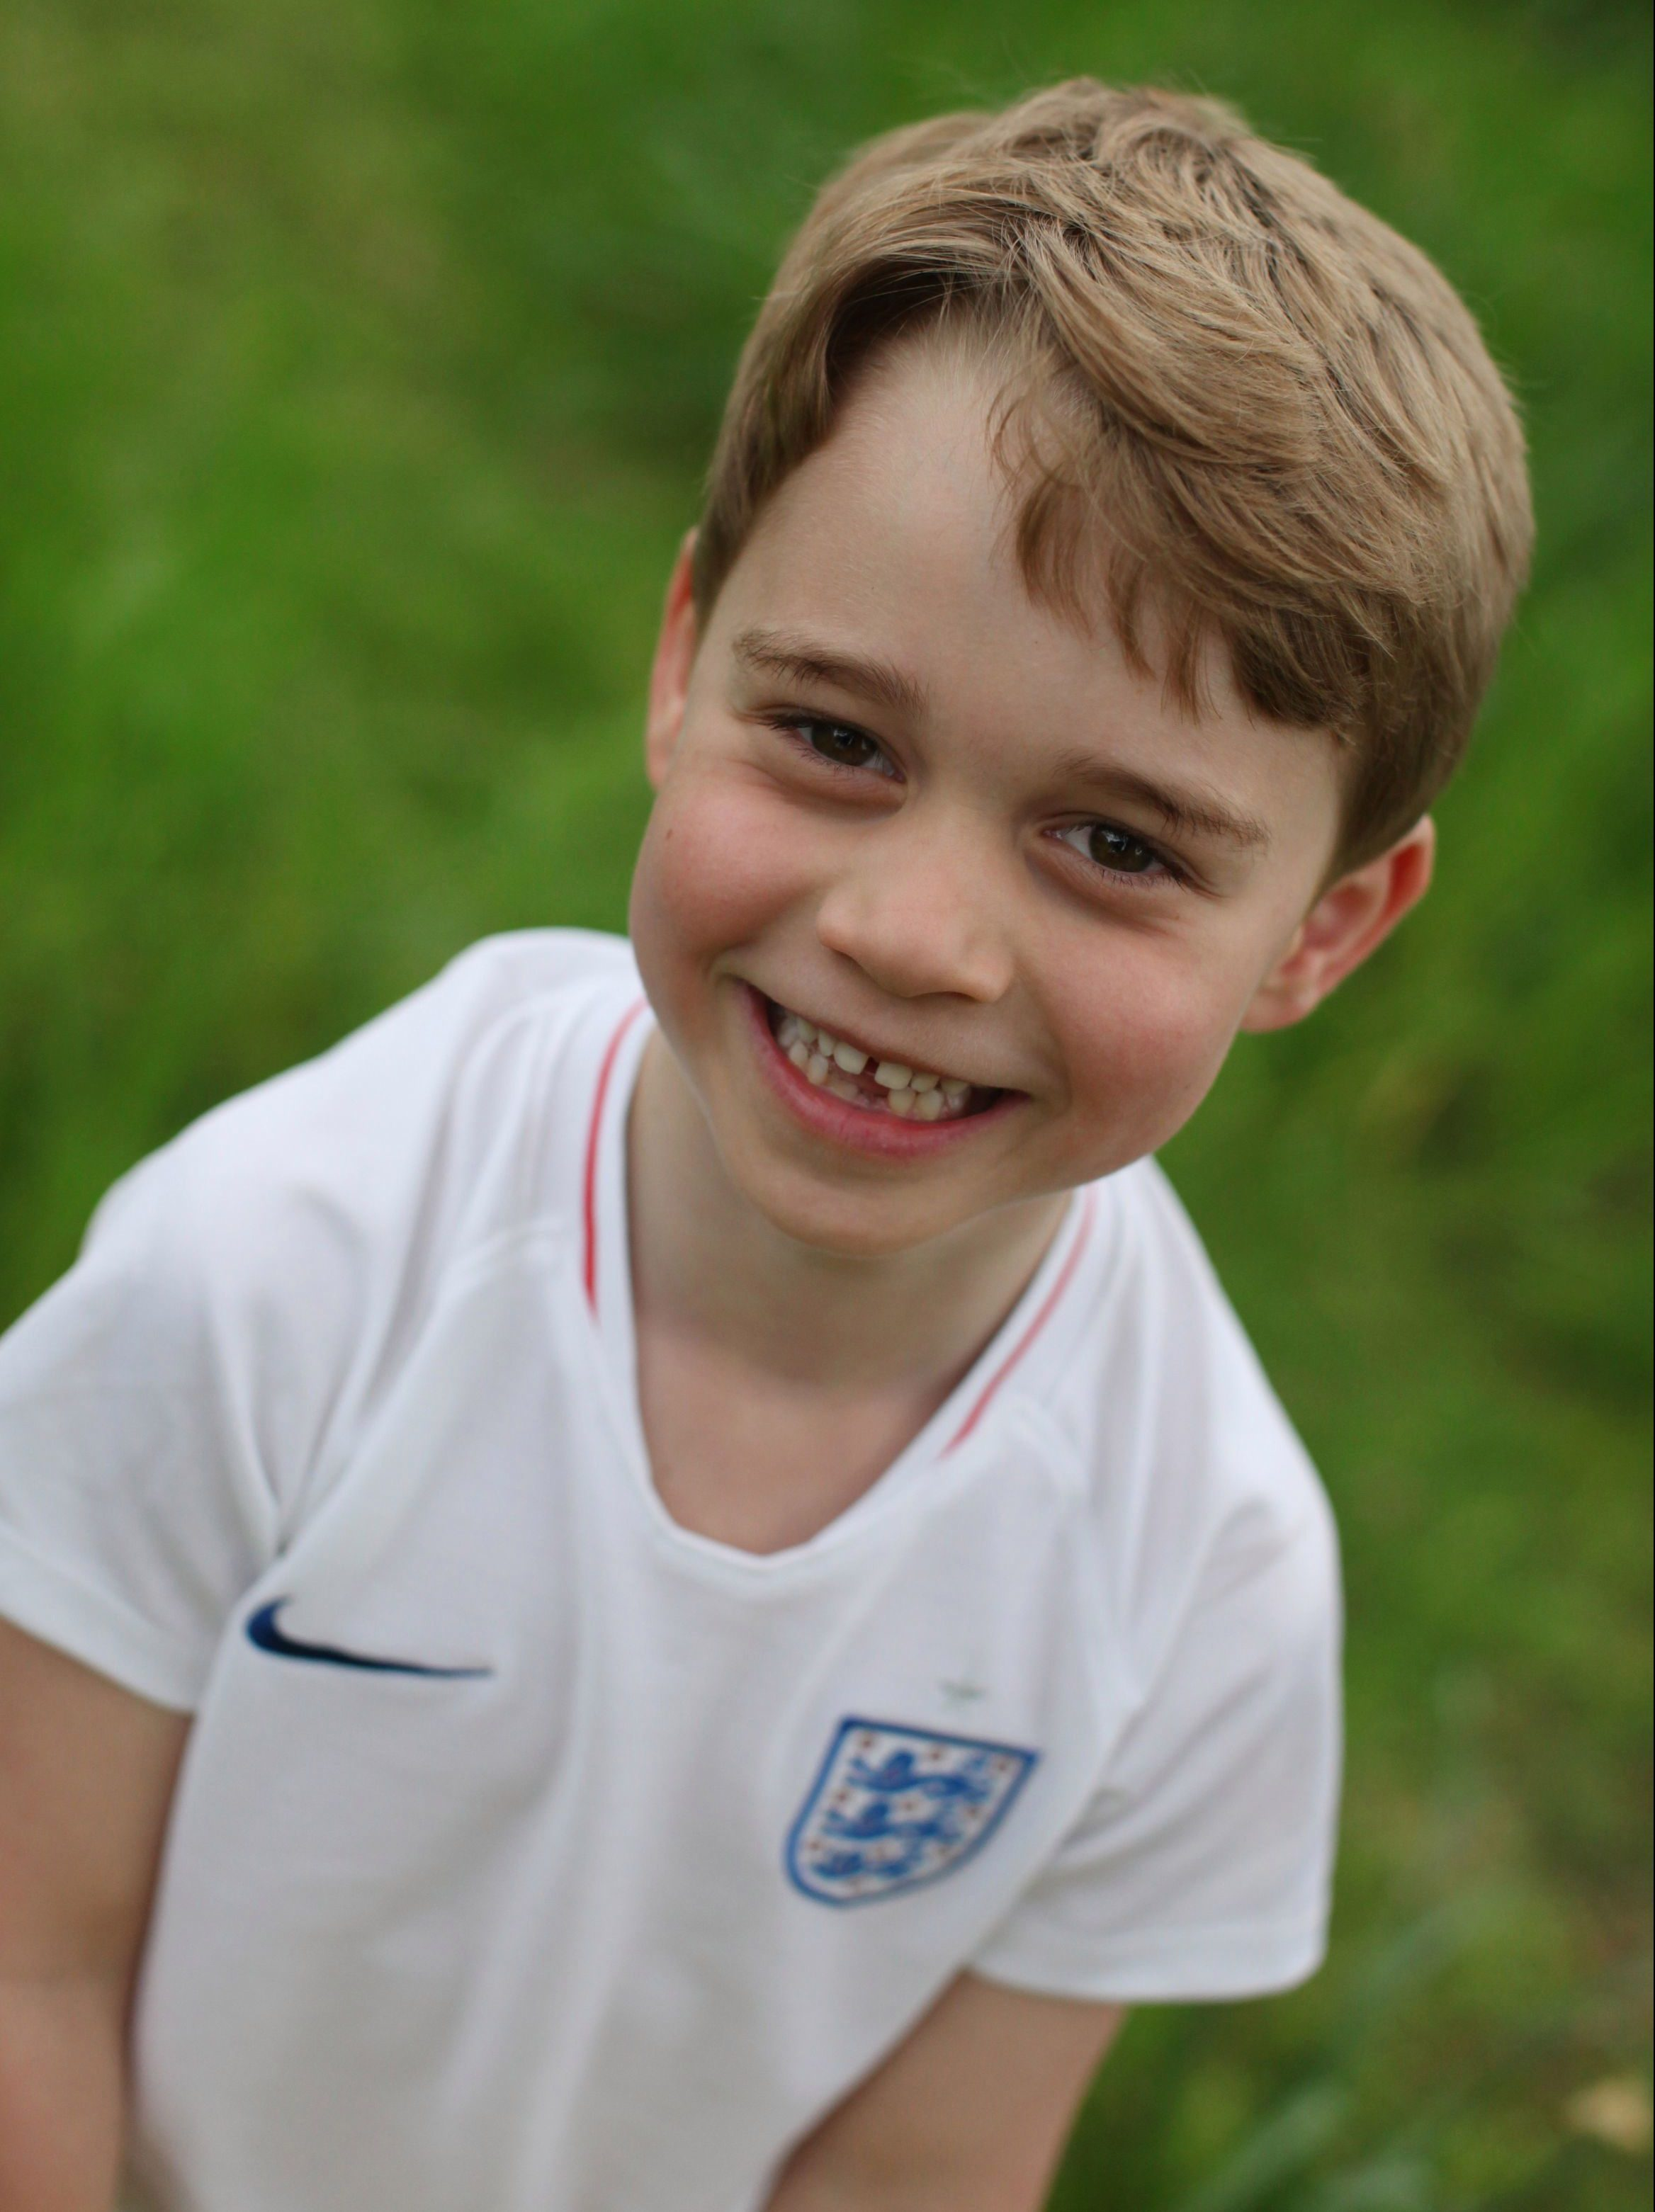 Prince George was pictured in his England football kit this year for his sixth birthday